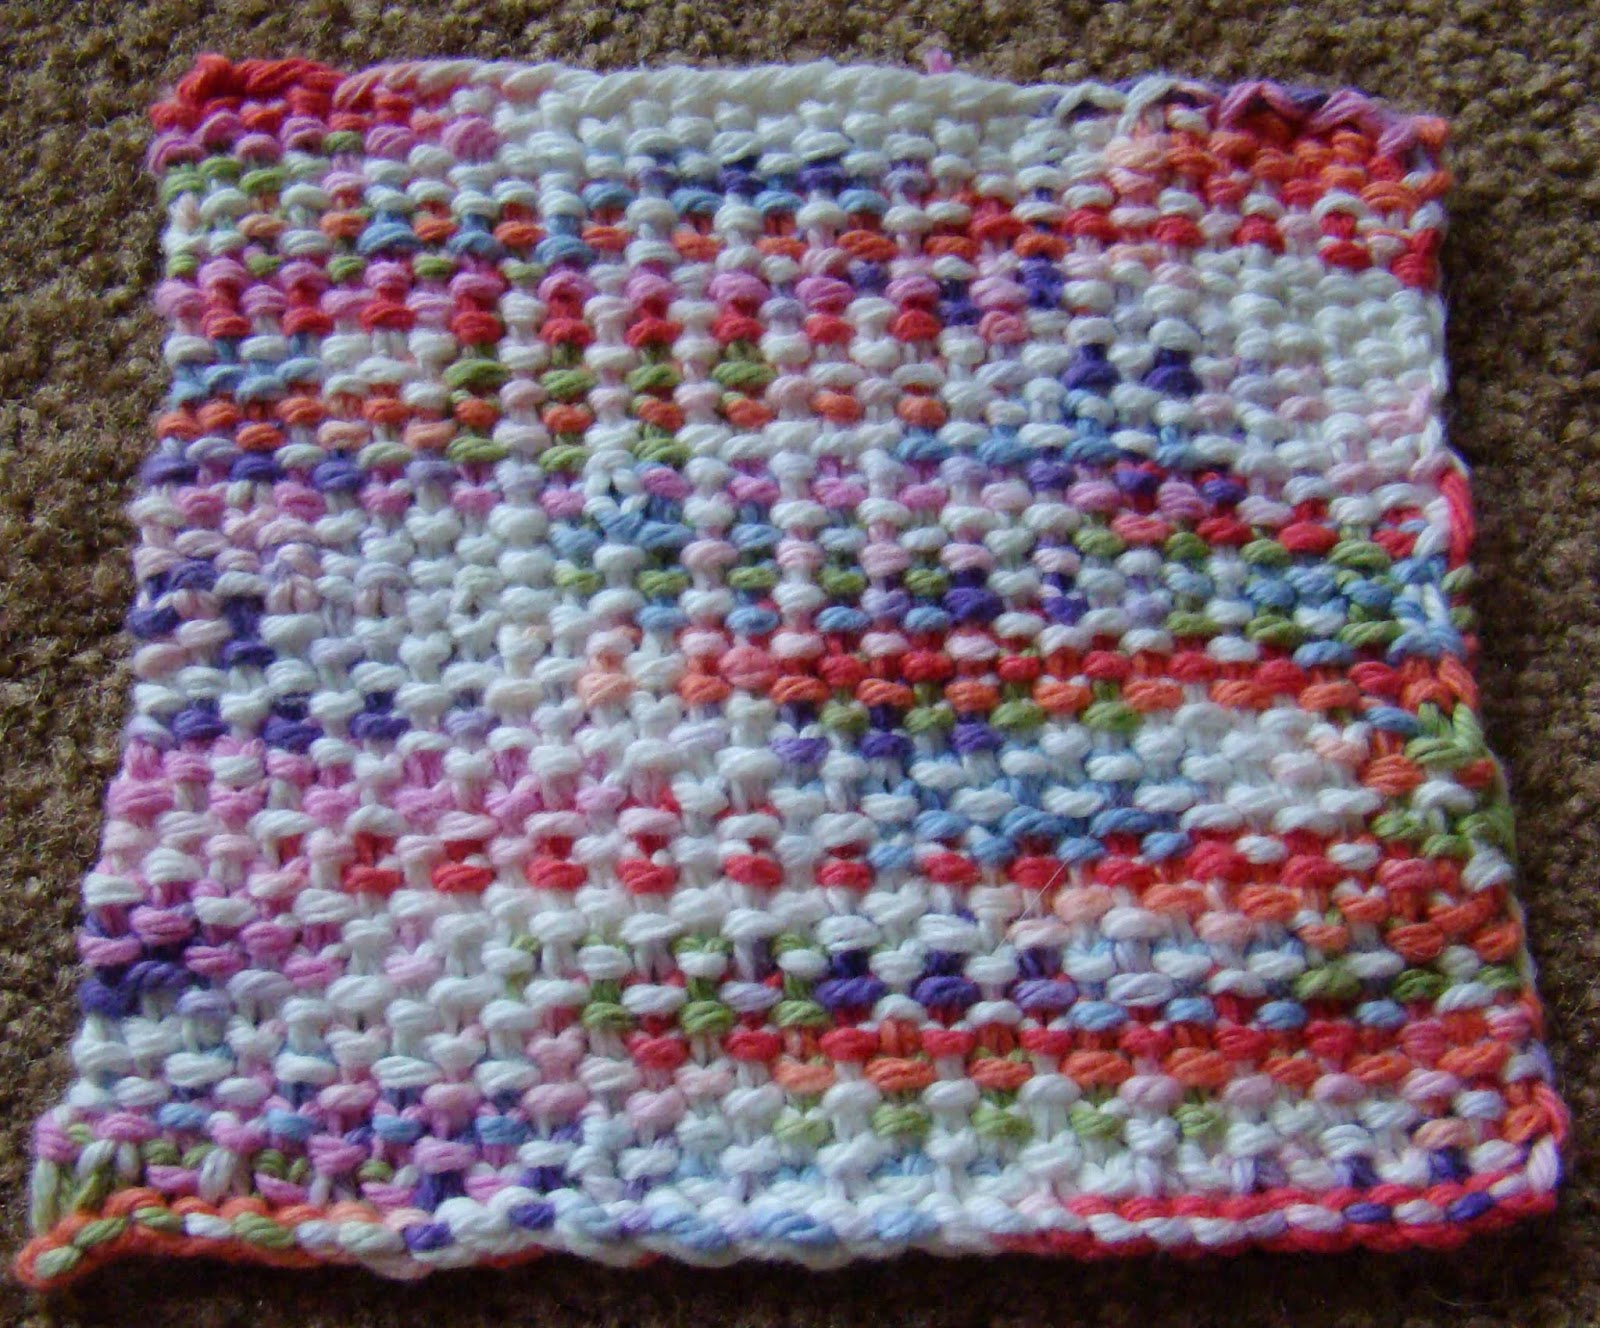 Stitch Along with Me: Off the Needles and Still Knitting Like Crazy!